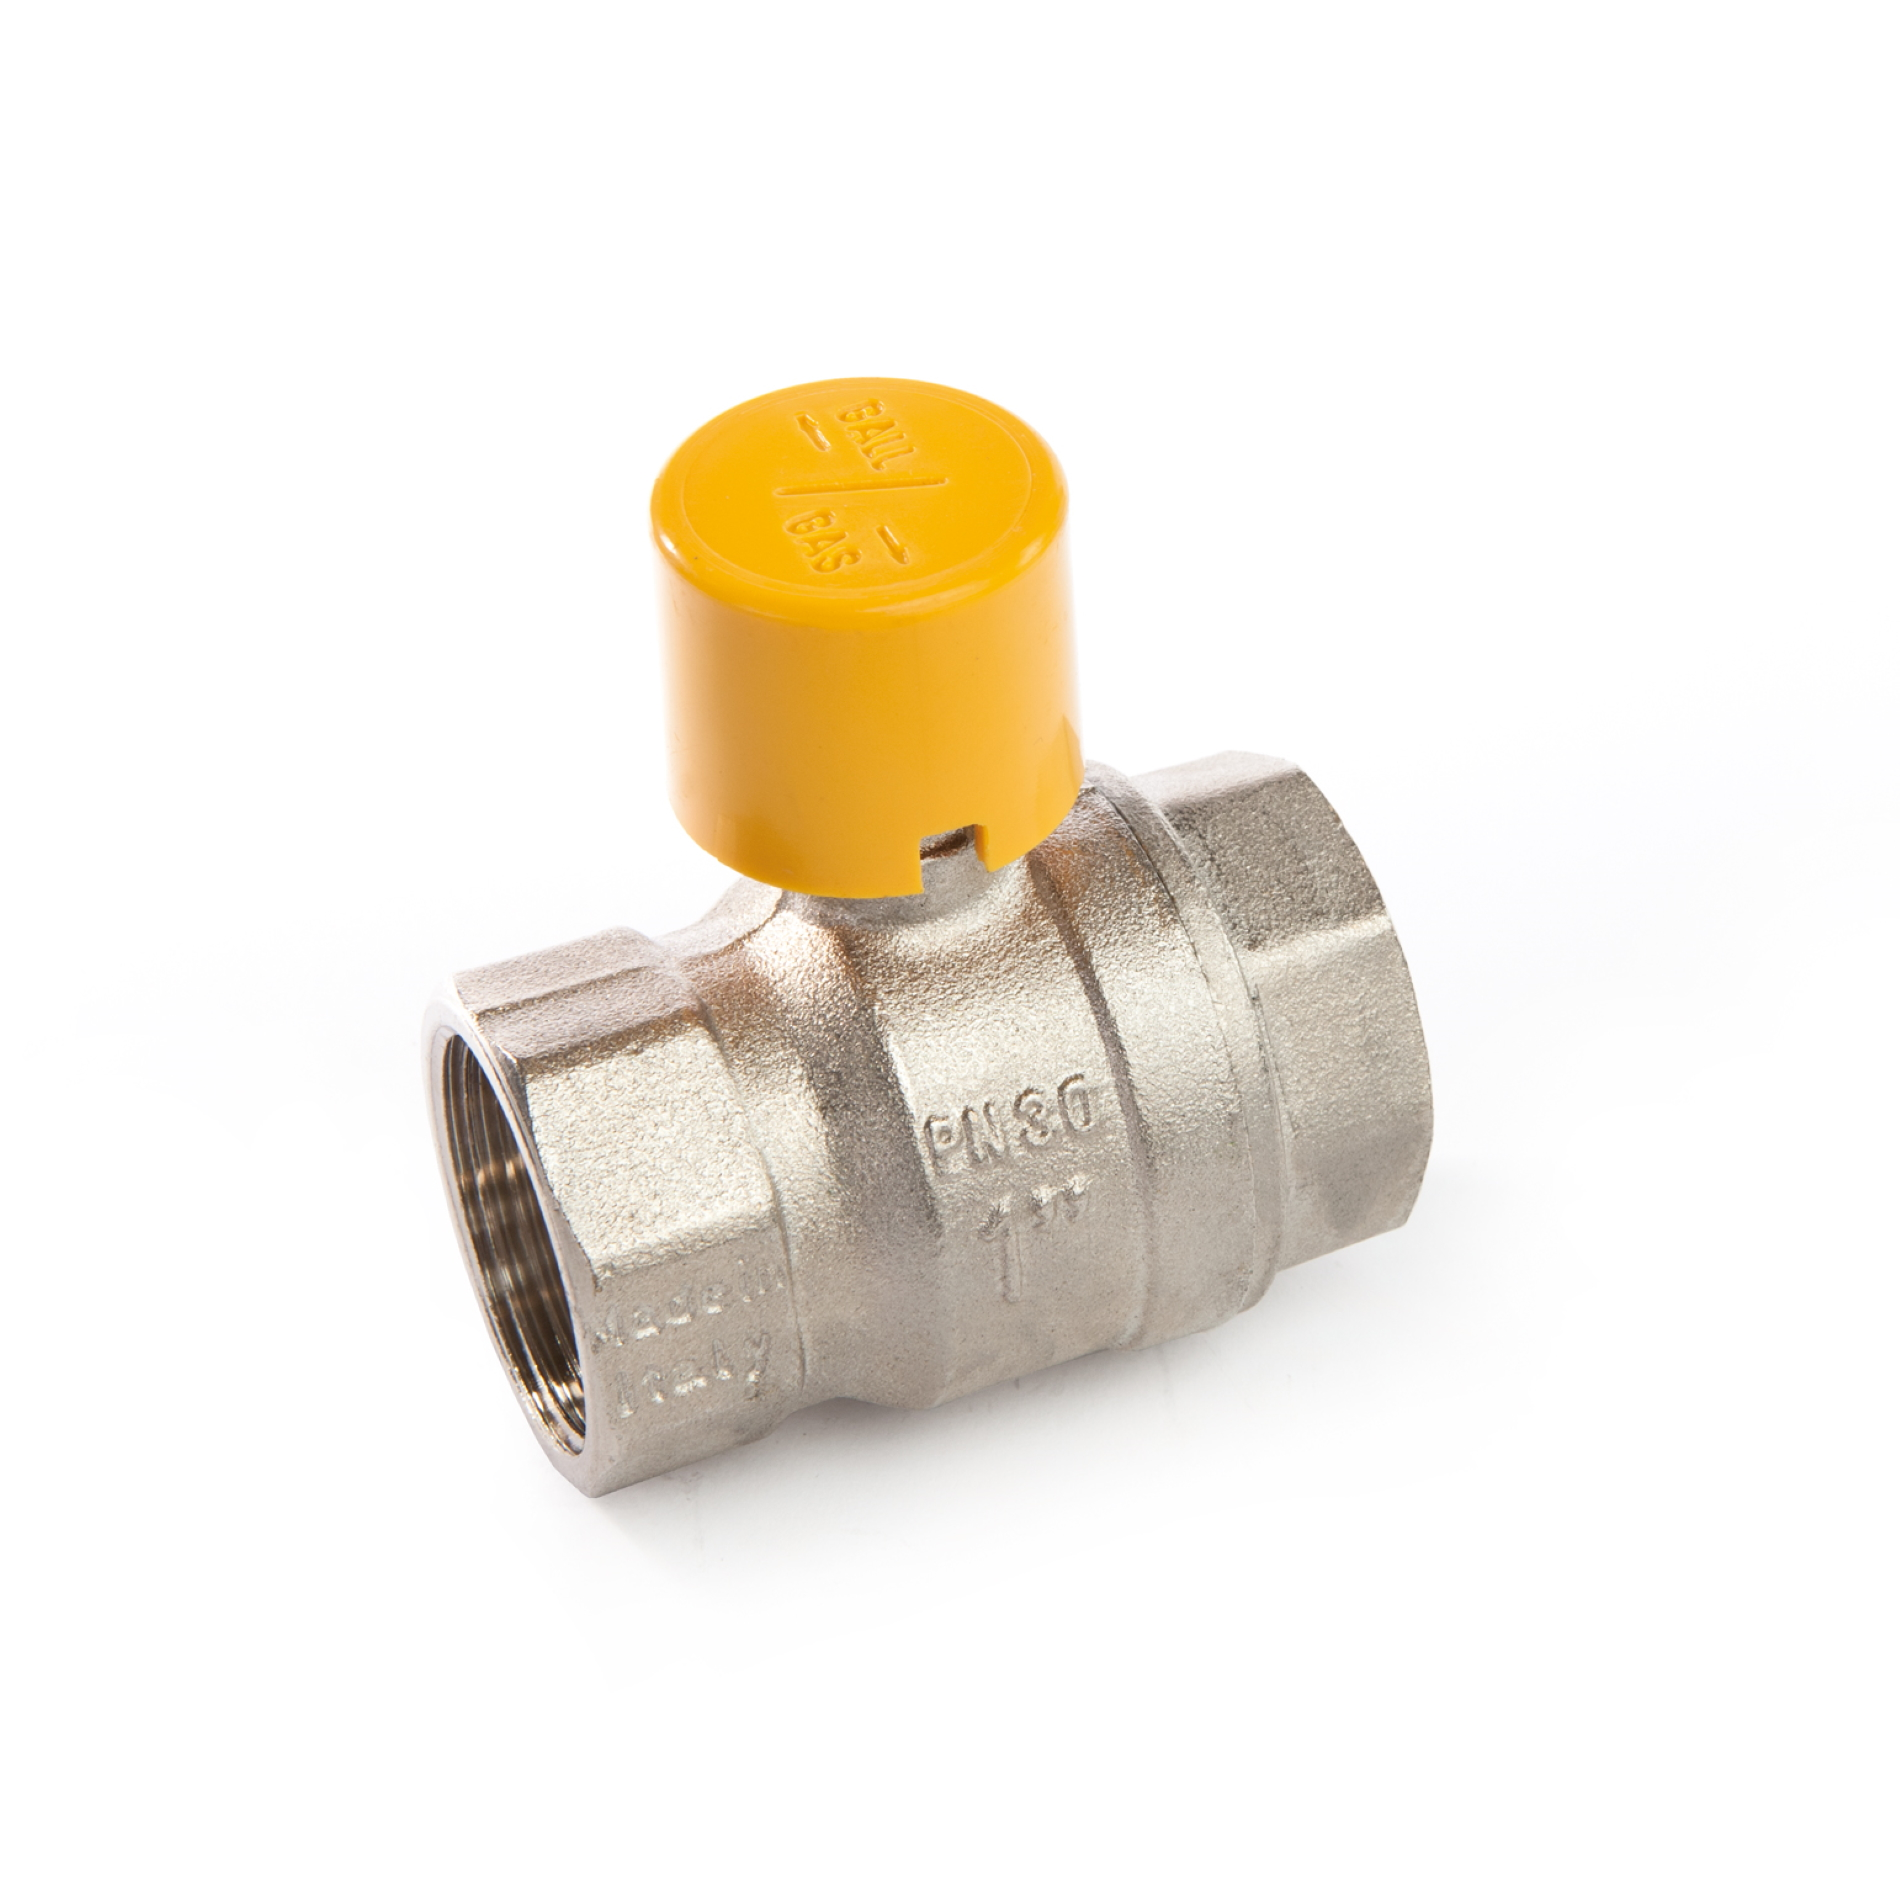 017FCS Valvola a sfera a passaggio totale per gas metano FxF sigillabile Full bore lockable ball valve